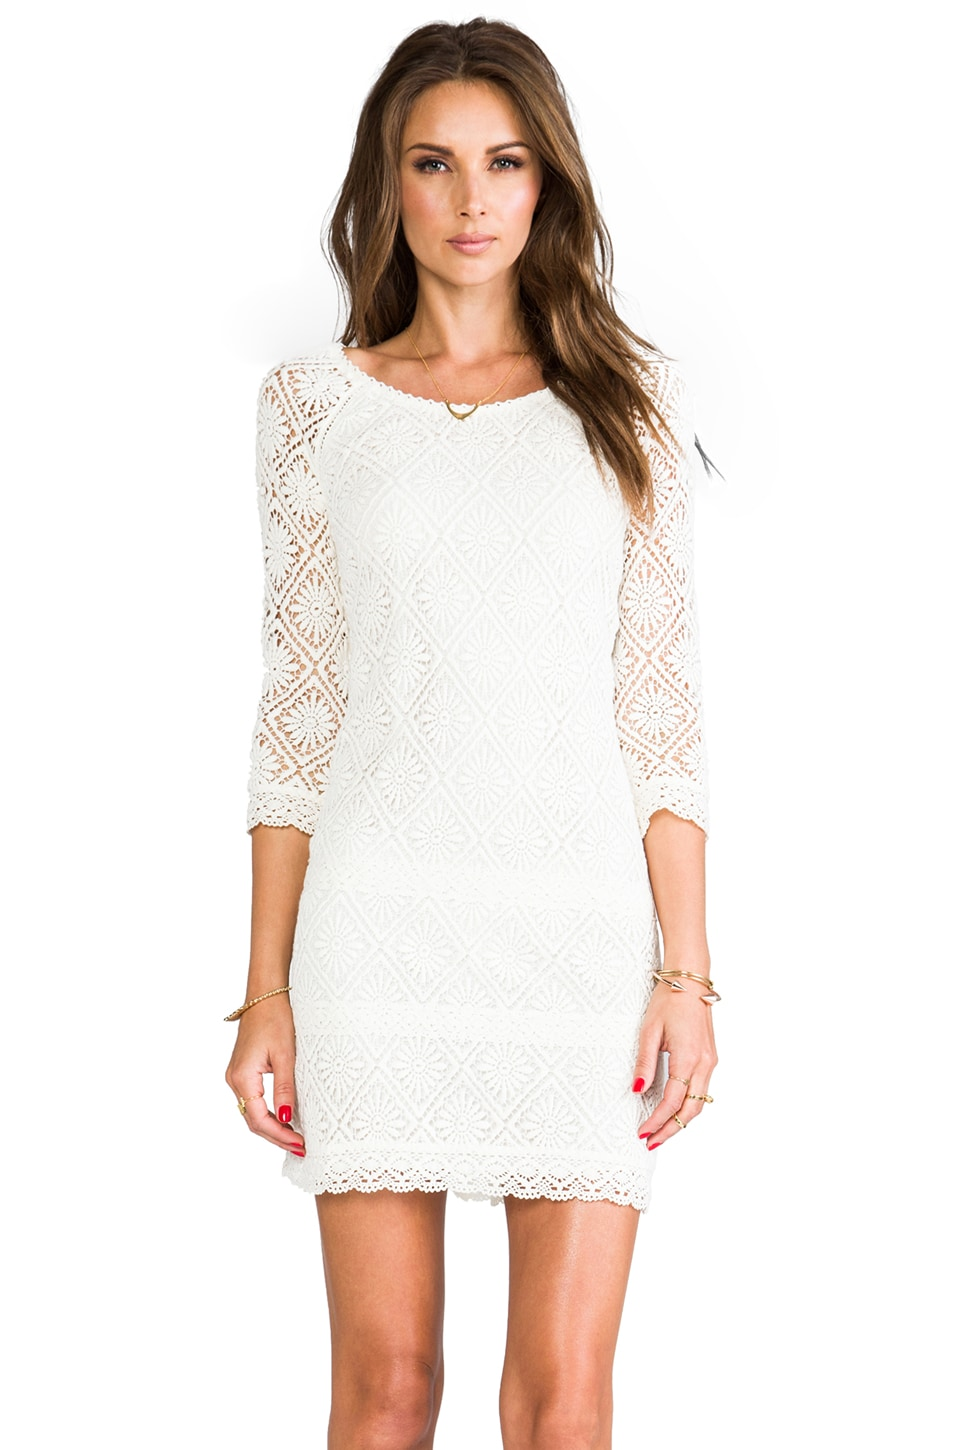 Juicy Couture Grace Dress in Angel